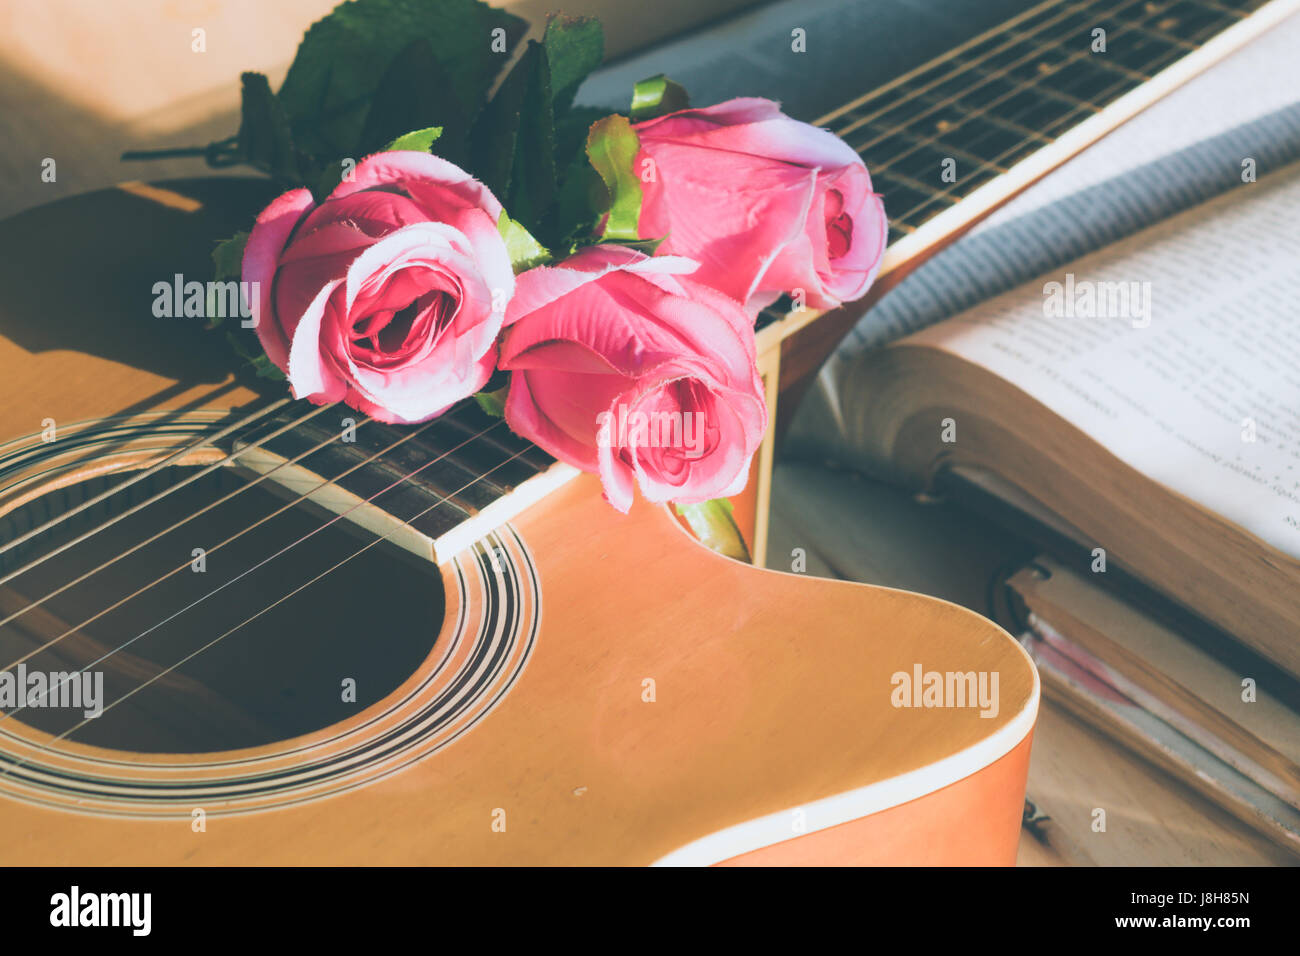 Rose flowers on a book with a guitar on a wood table. - Stock Image